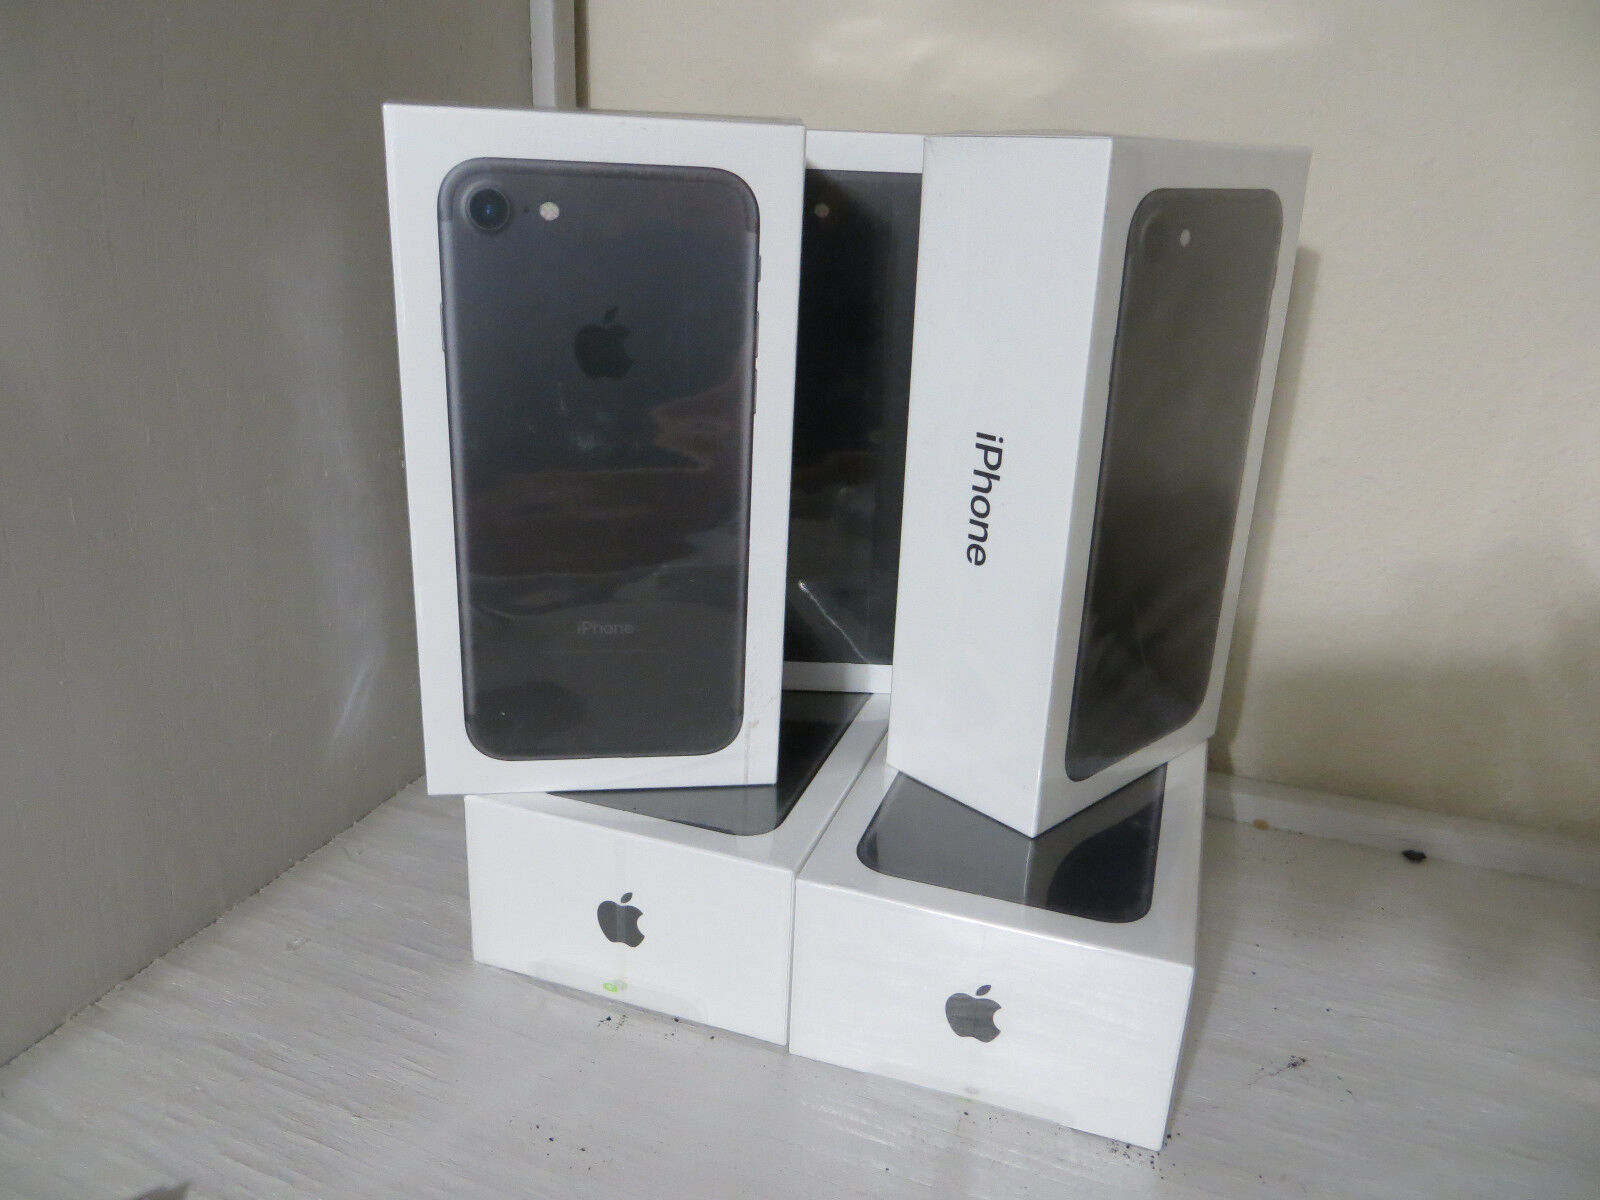 Brand NEW SEALED Apple iPhone 7 - 32GB - Black (AT&T) A1778 (GSM) 1 year Waranty